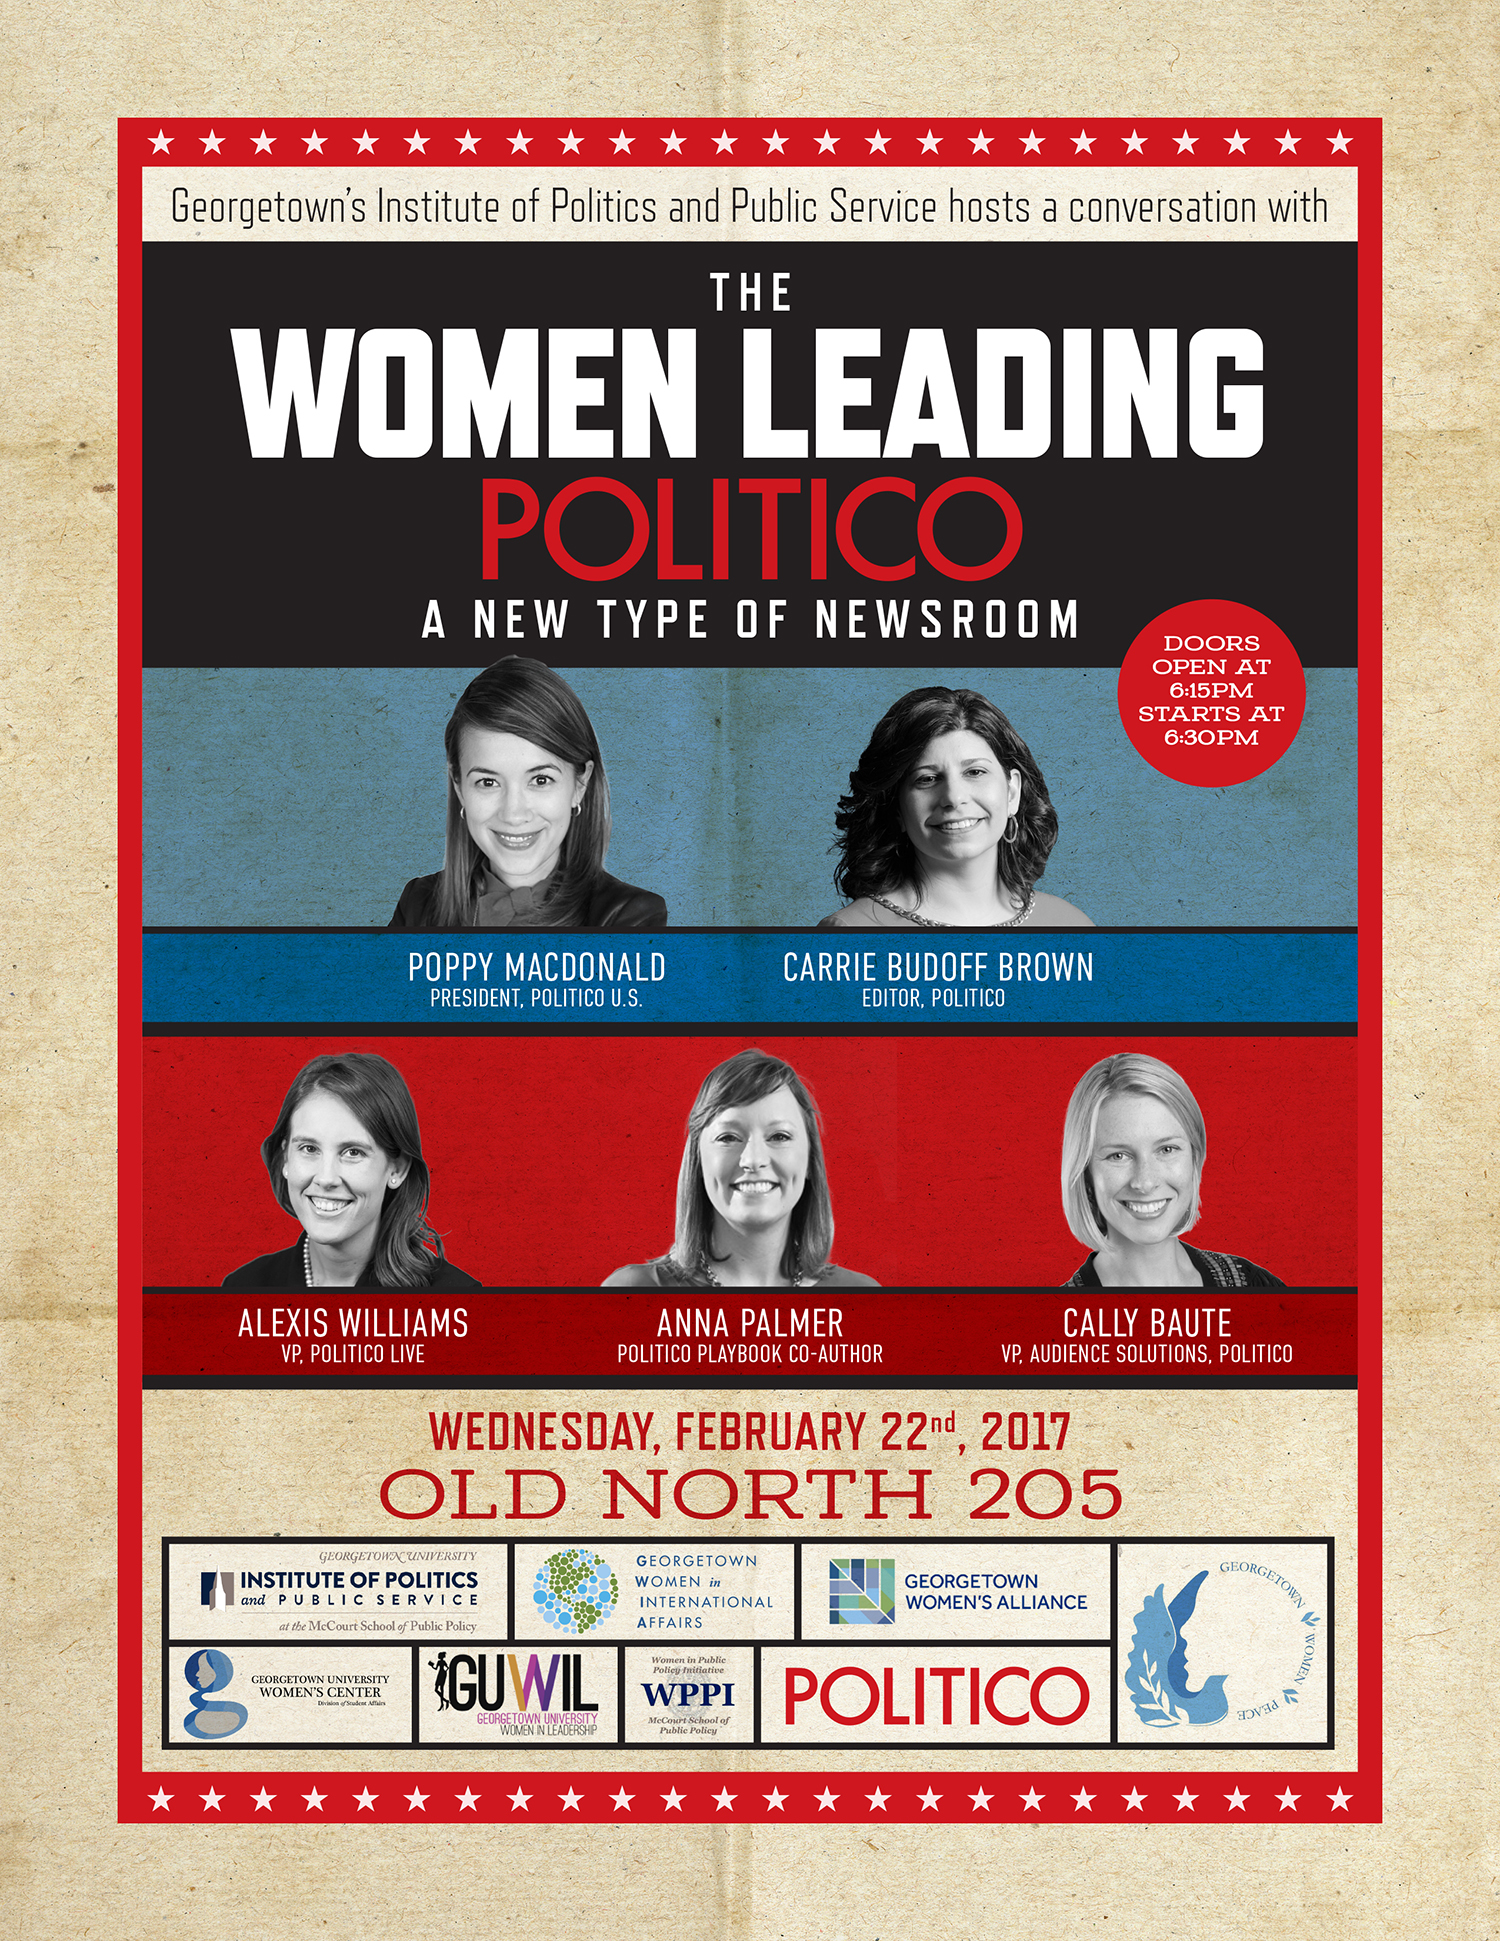 Advertisement for an event at Georgetown's Institute of Politics and Public Service